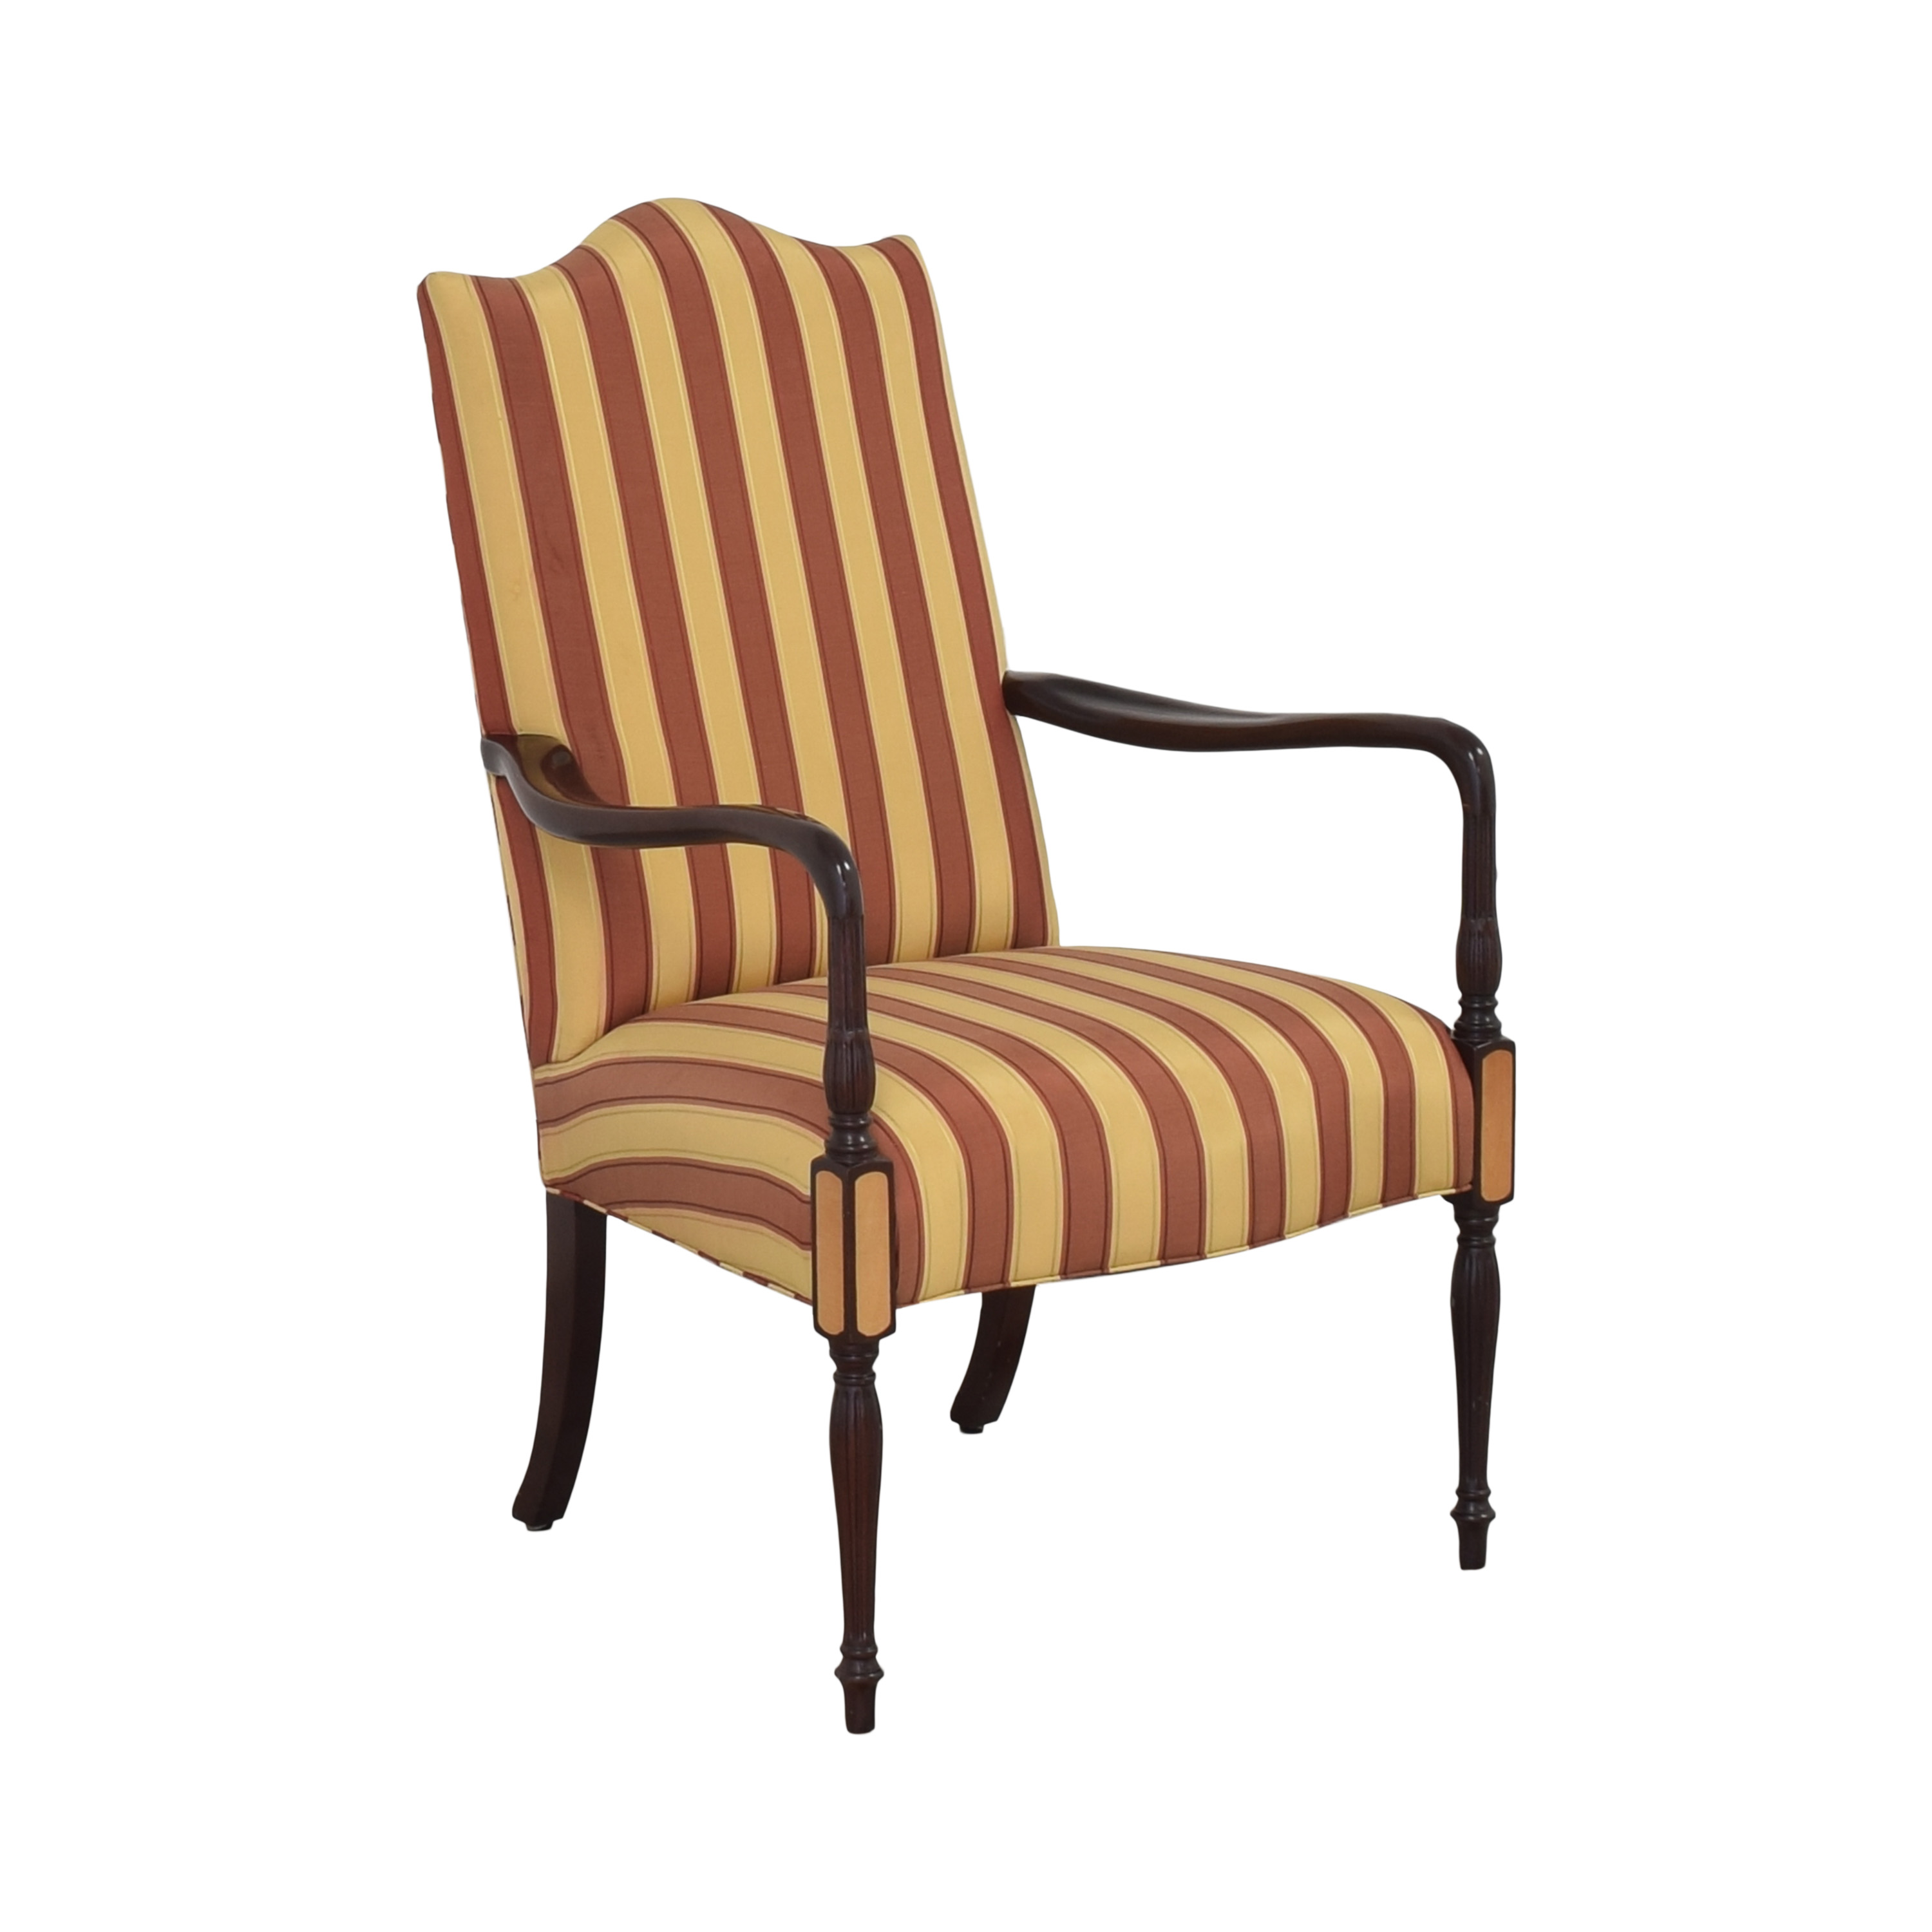 Hancock and Moore Hancock & Moore Striped Accent Chair